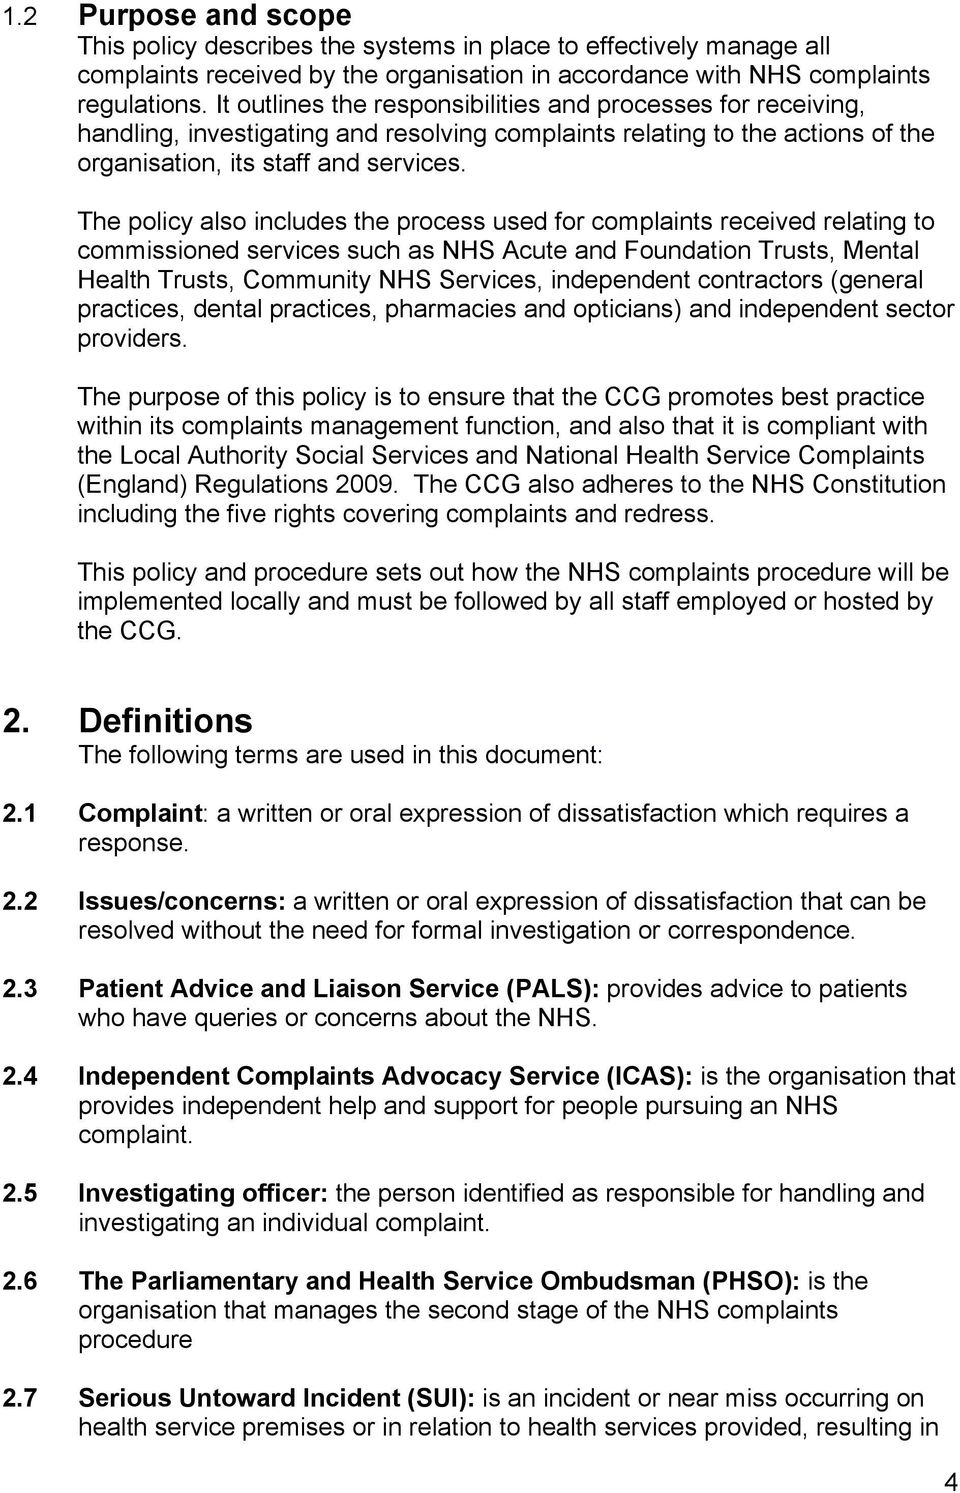 The policy also includes the process used for complaints received relating to commissioned services such as NHS Acute and Foundation Trusts, Mental Health Trusts, Community NHS Services, independent